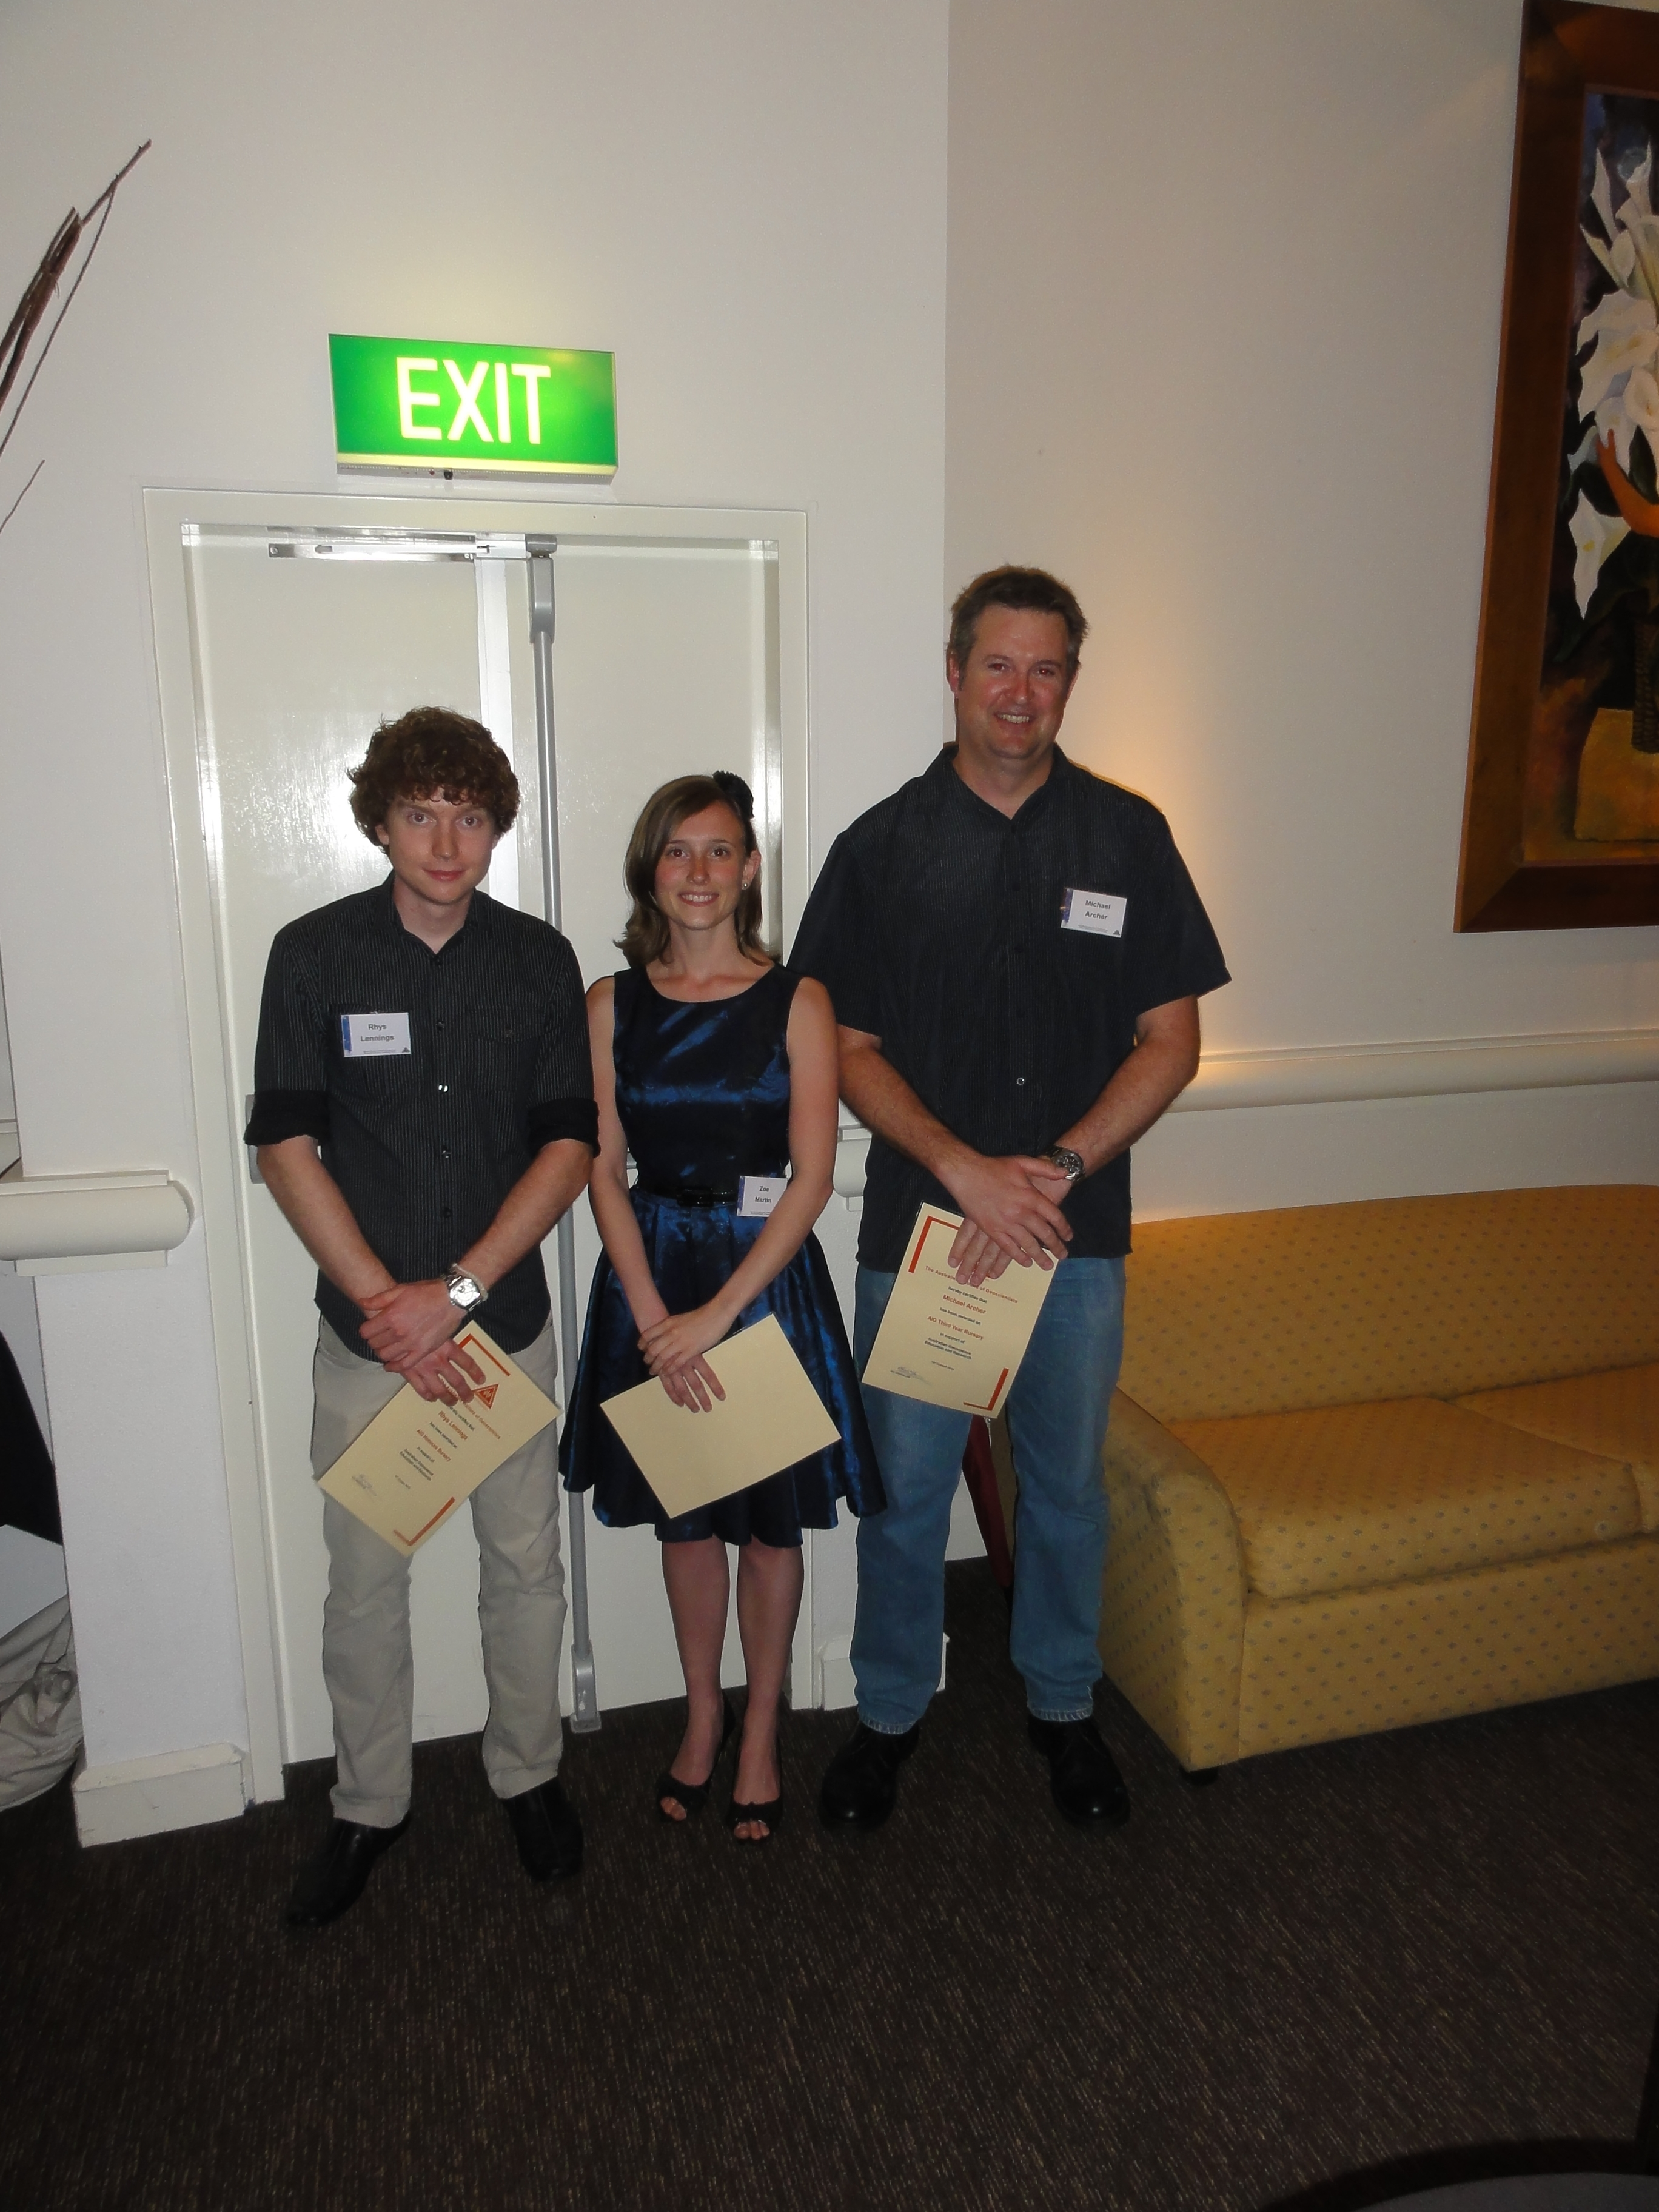 2010 qld awards photo_flipped